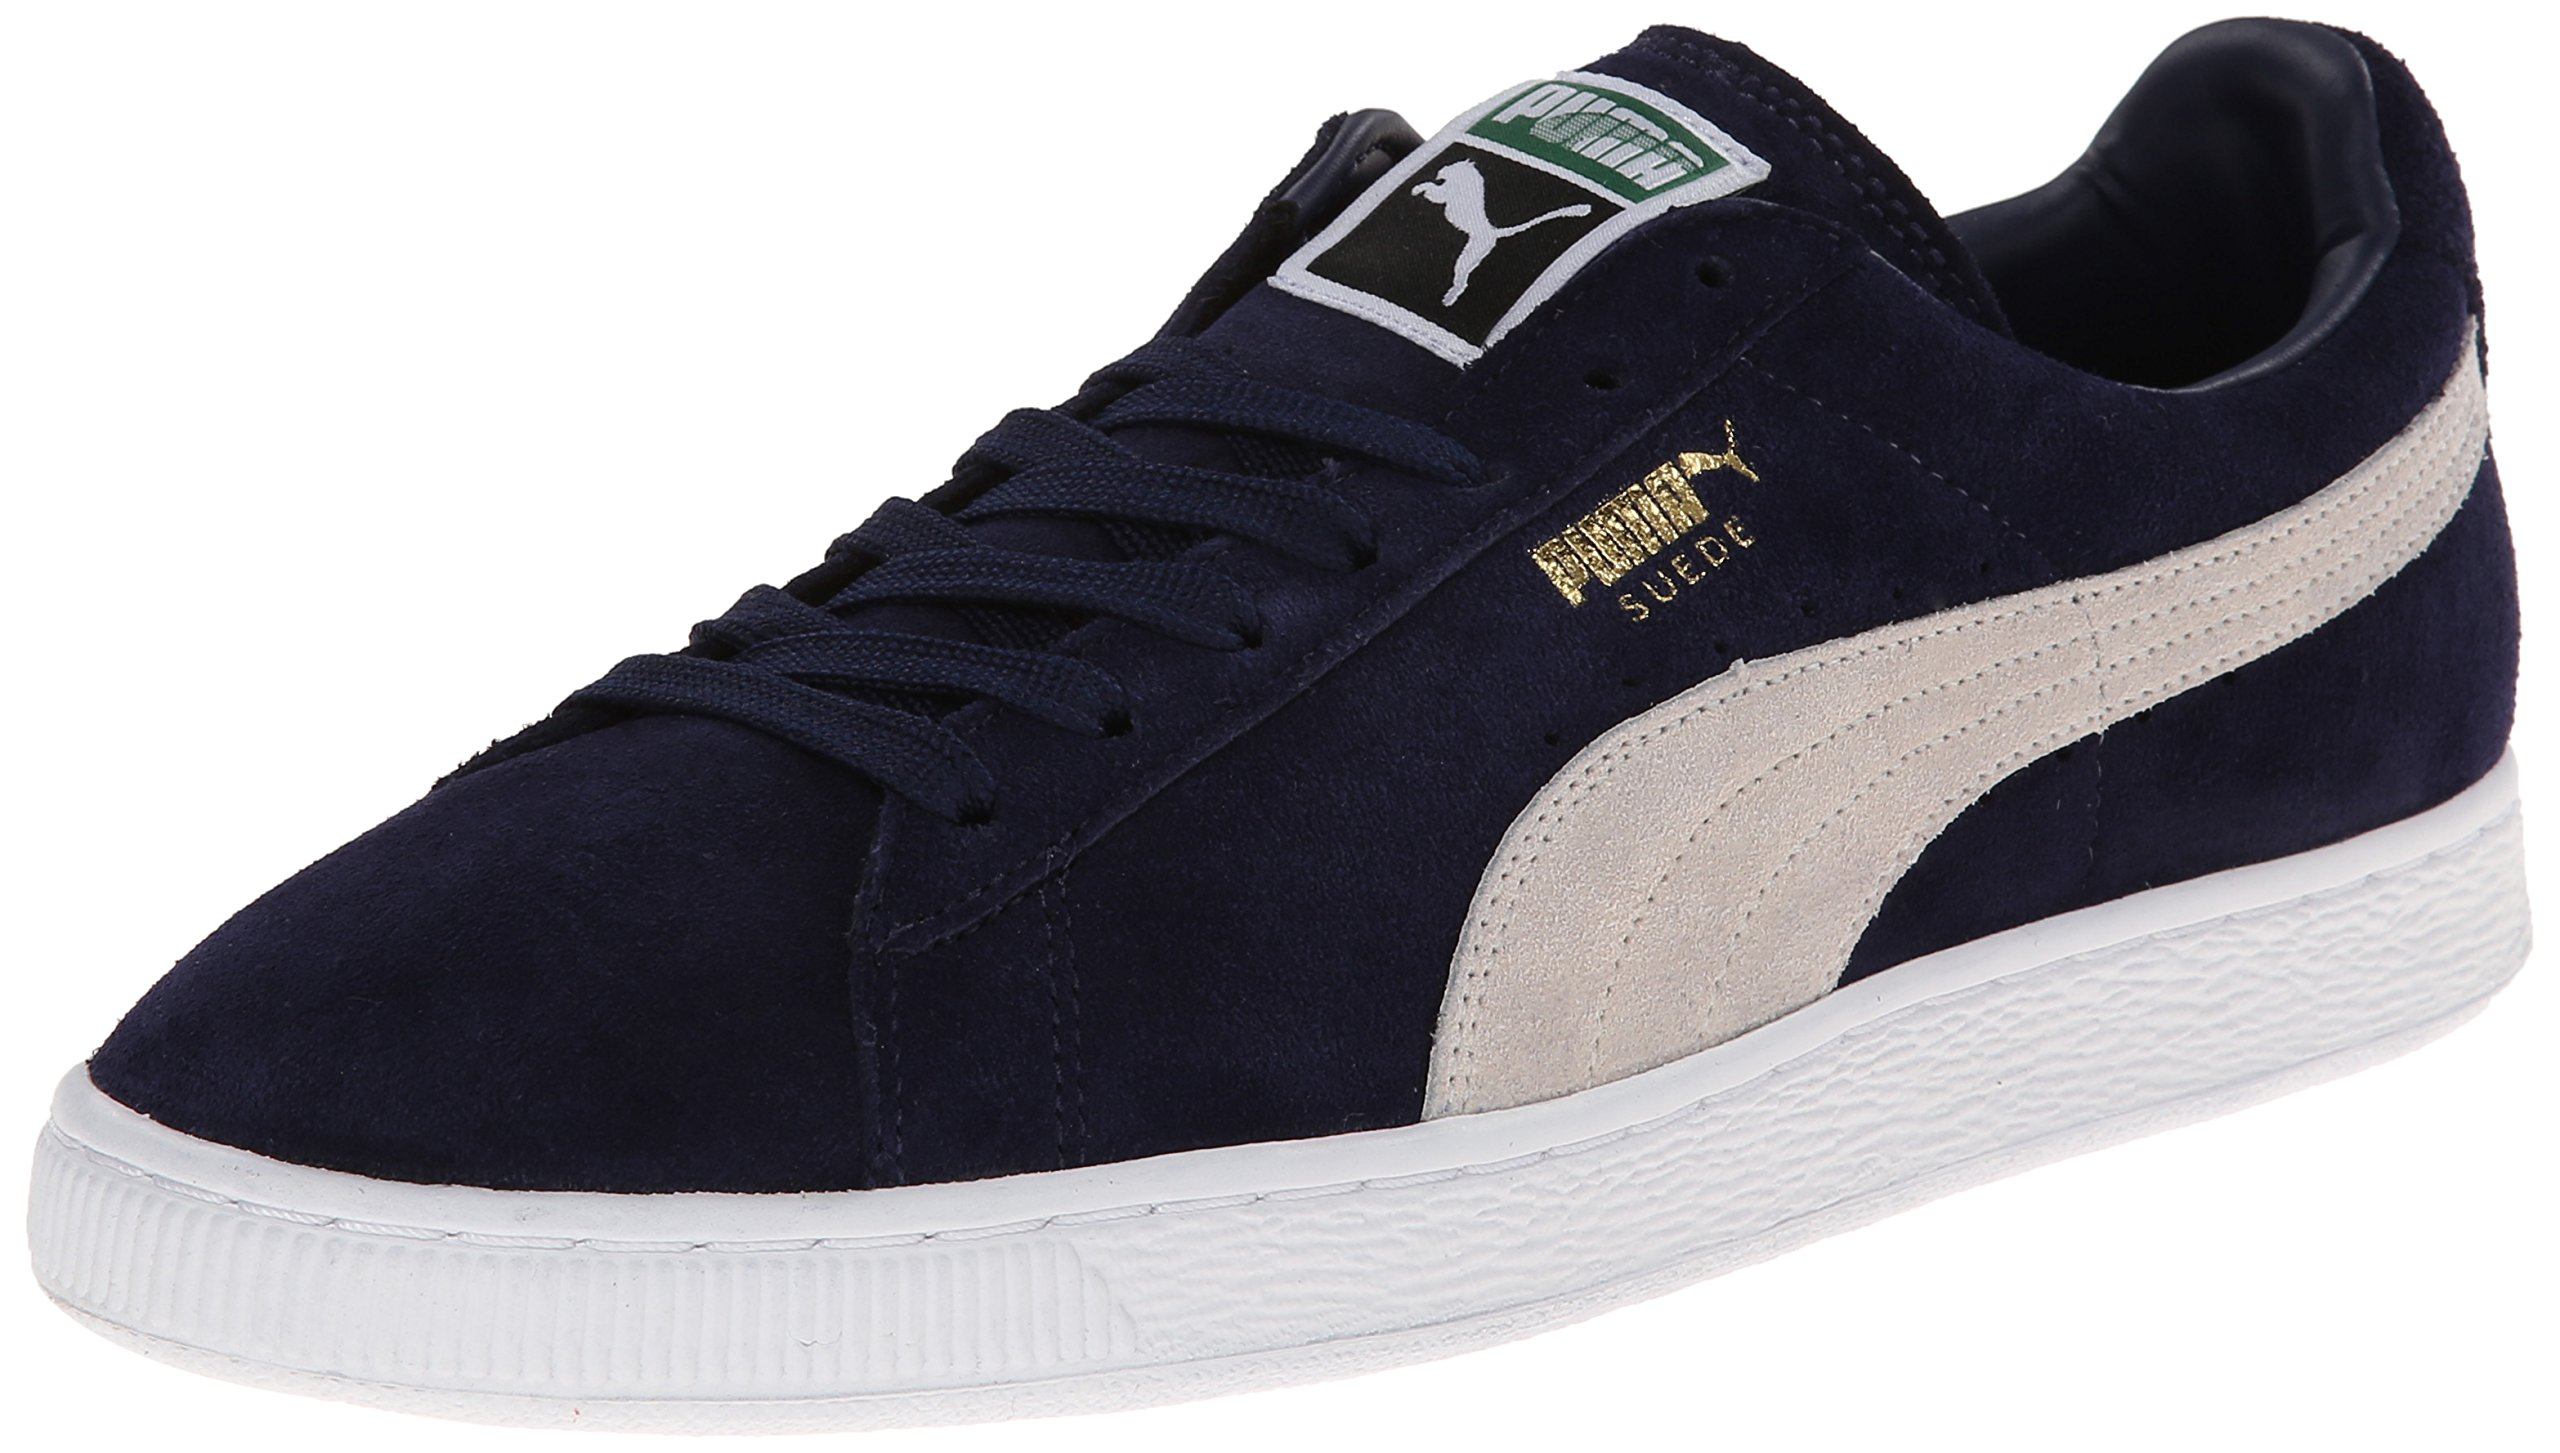 PUMA Men's Suede Classic + Sneaker, Peacoat/White, 12 M US by PUMA